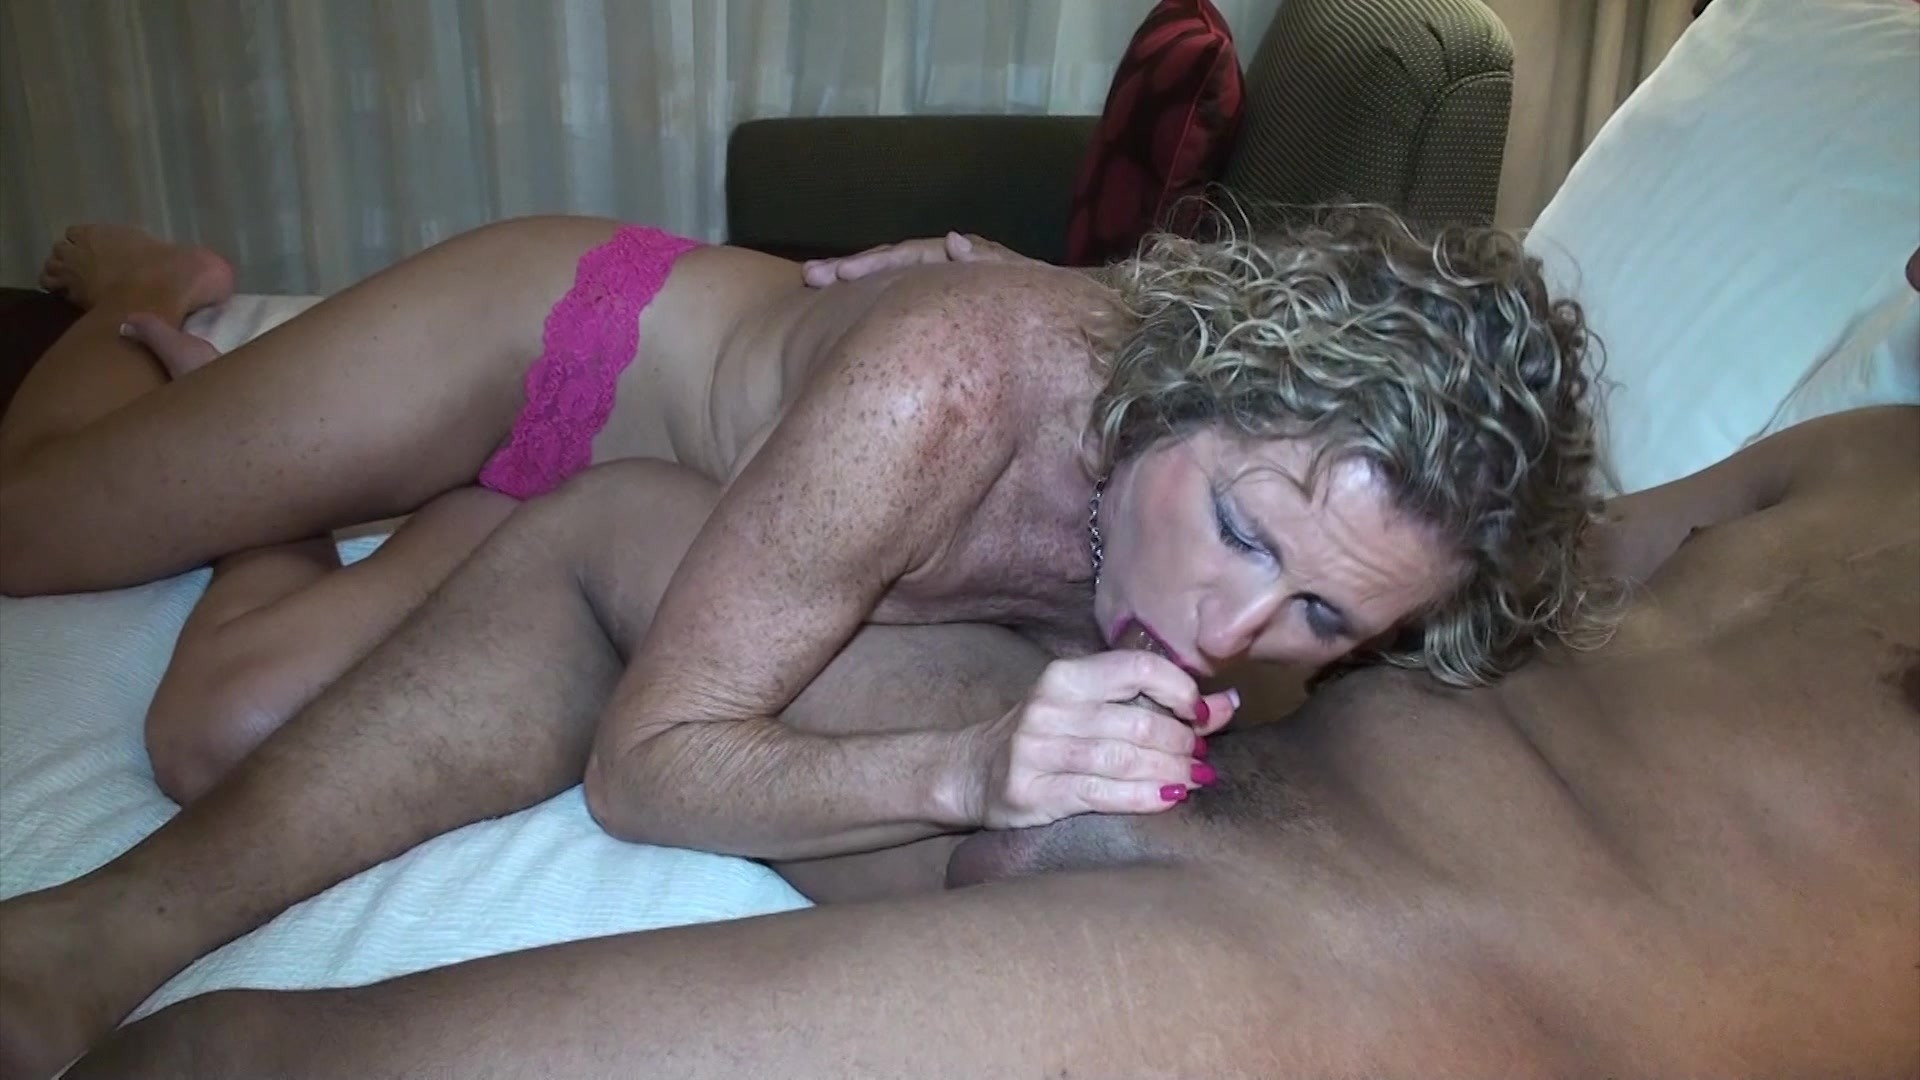 Female led relationship cock control orgasm